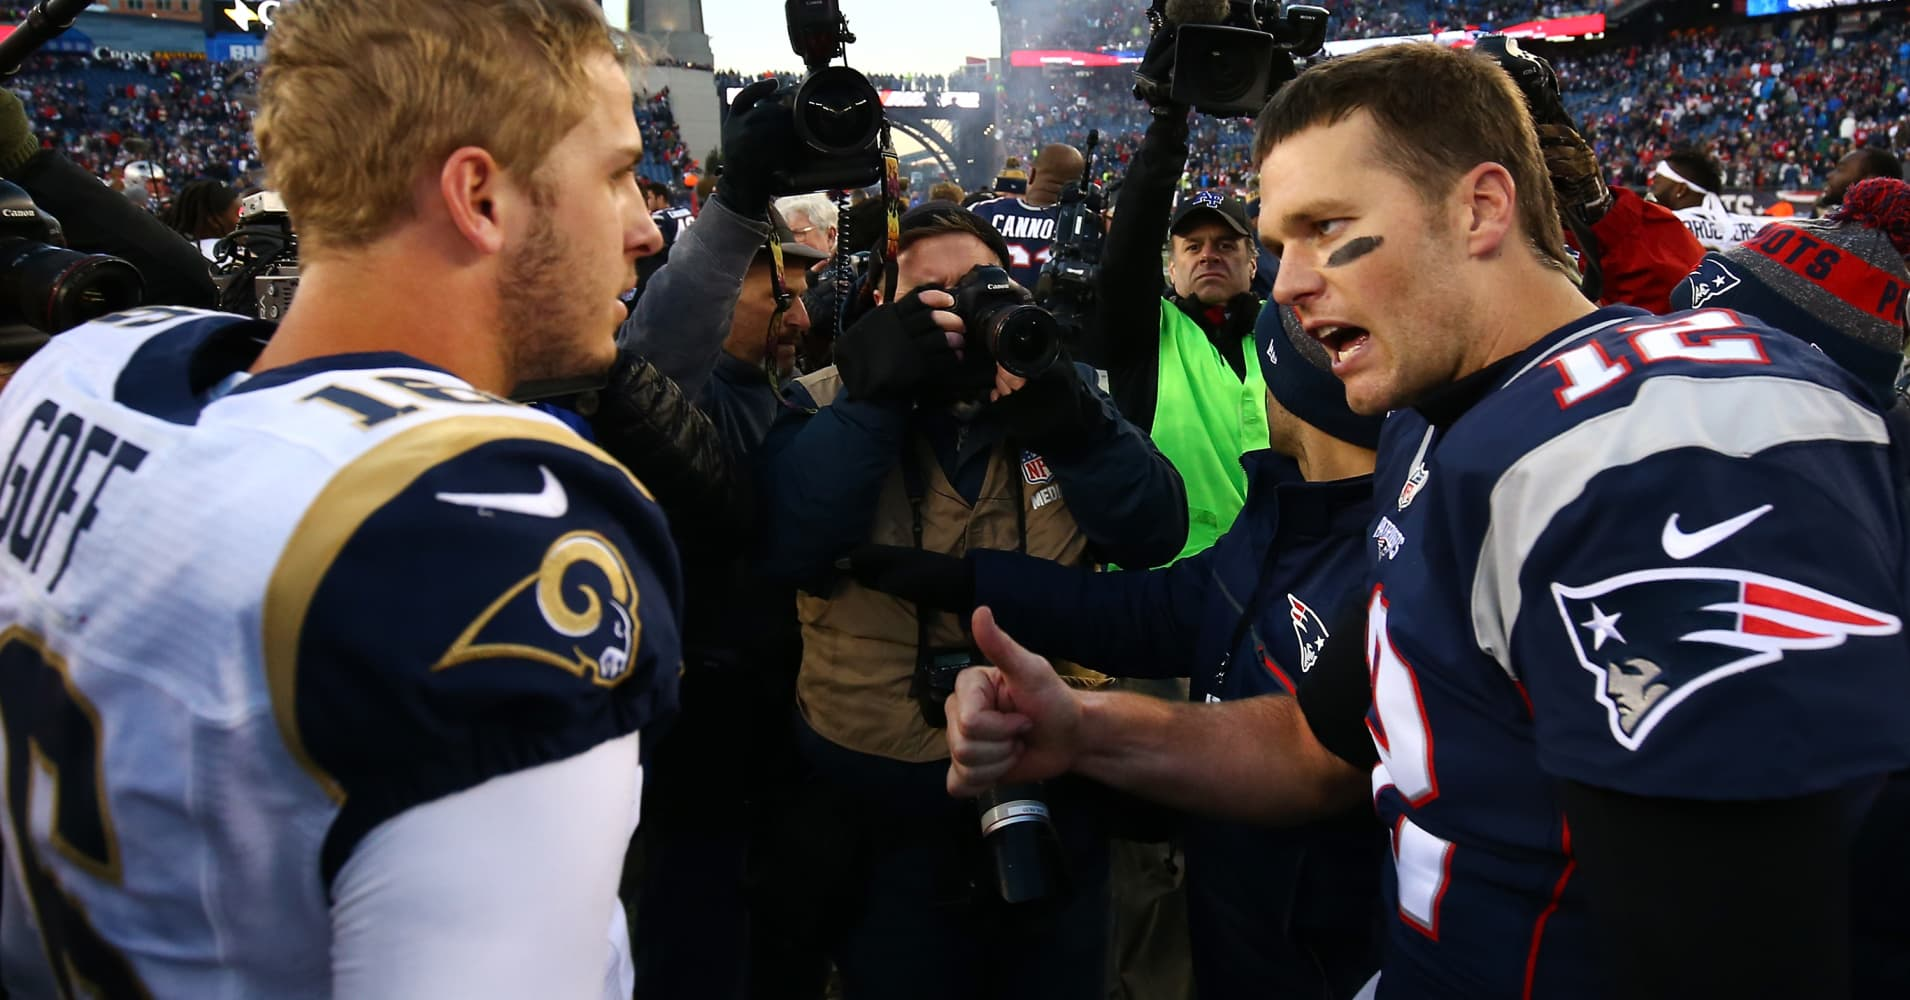 Jared Goff #16 of the Los Angeles Rams greets Tom Brady #12 of the New England Patriots.